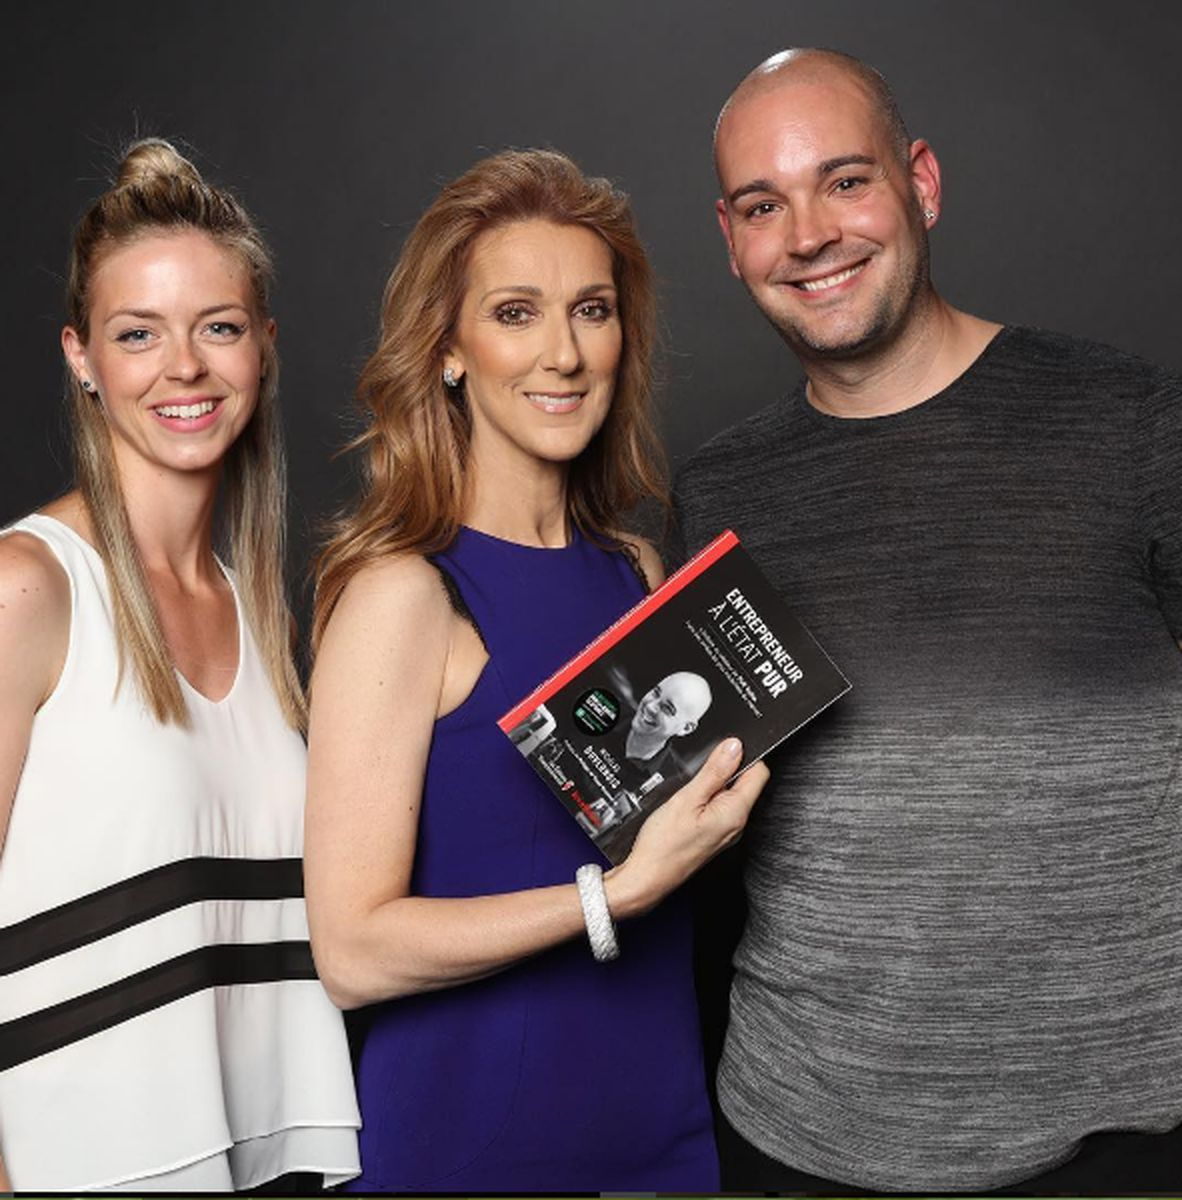 The power of love celine dion celine dion meet greet centre proof that by working hard you can achieve all his dreams meeting with the greatest artist my idol my inspiration celine dion m4hsunfo